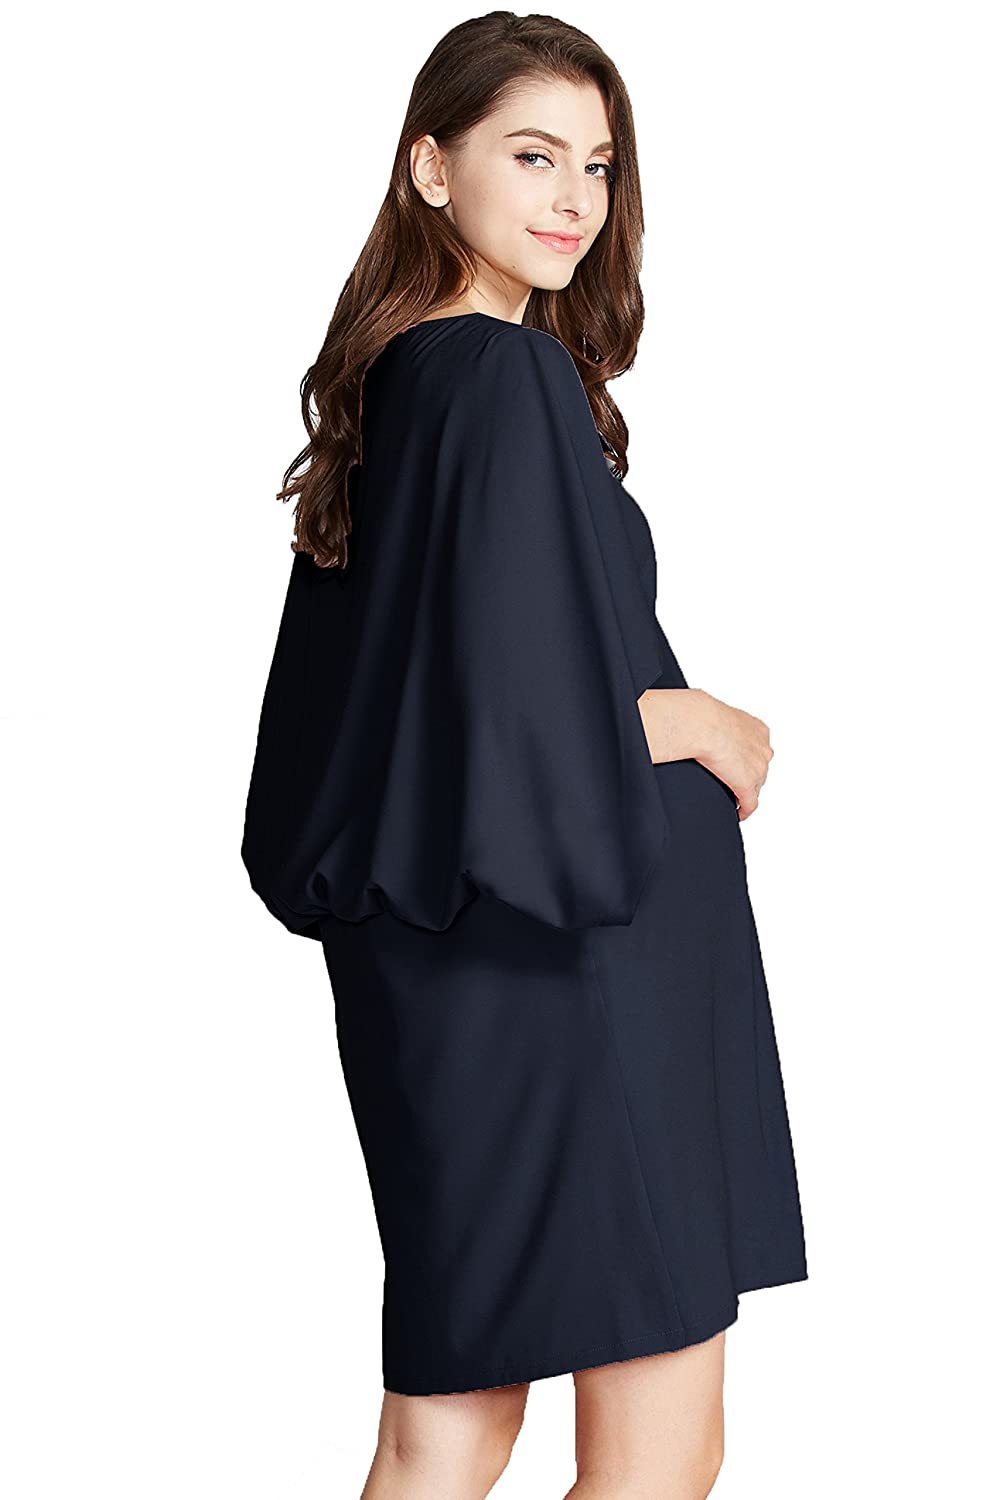 Sweet Mommy Maternity and Nursing Cape Dress Sweet Mommy Co. Ltd bo6105